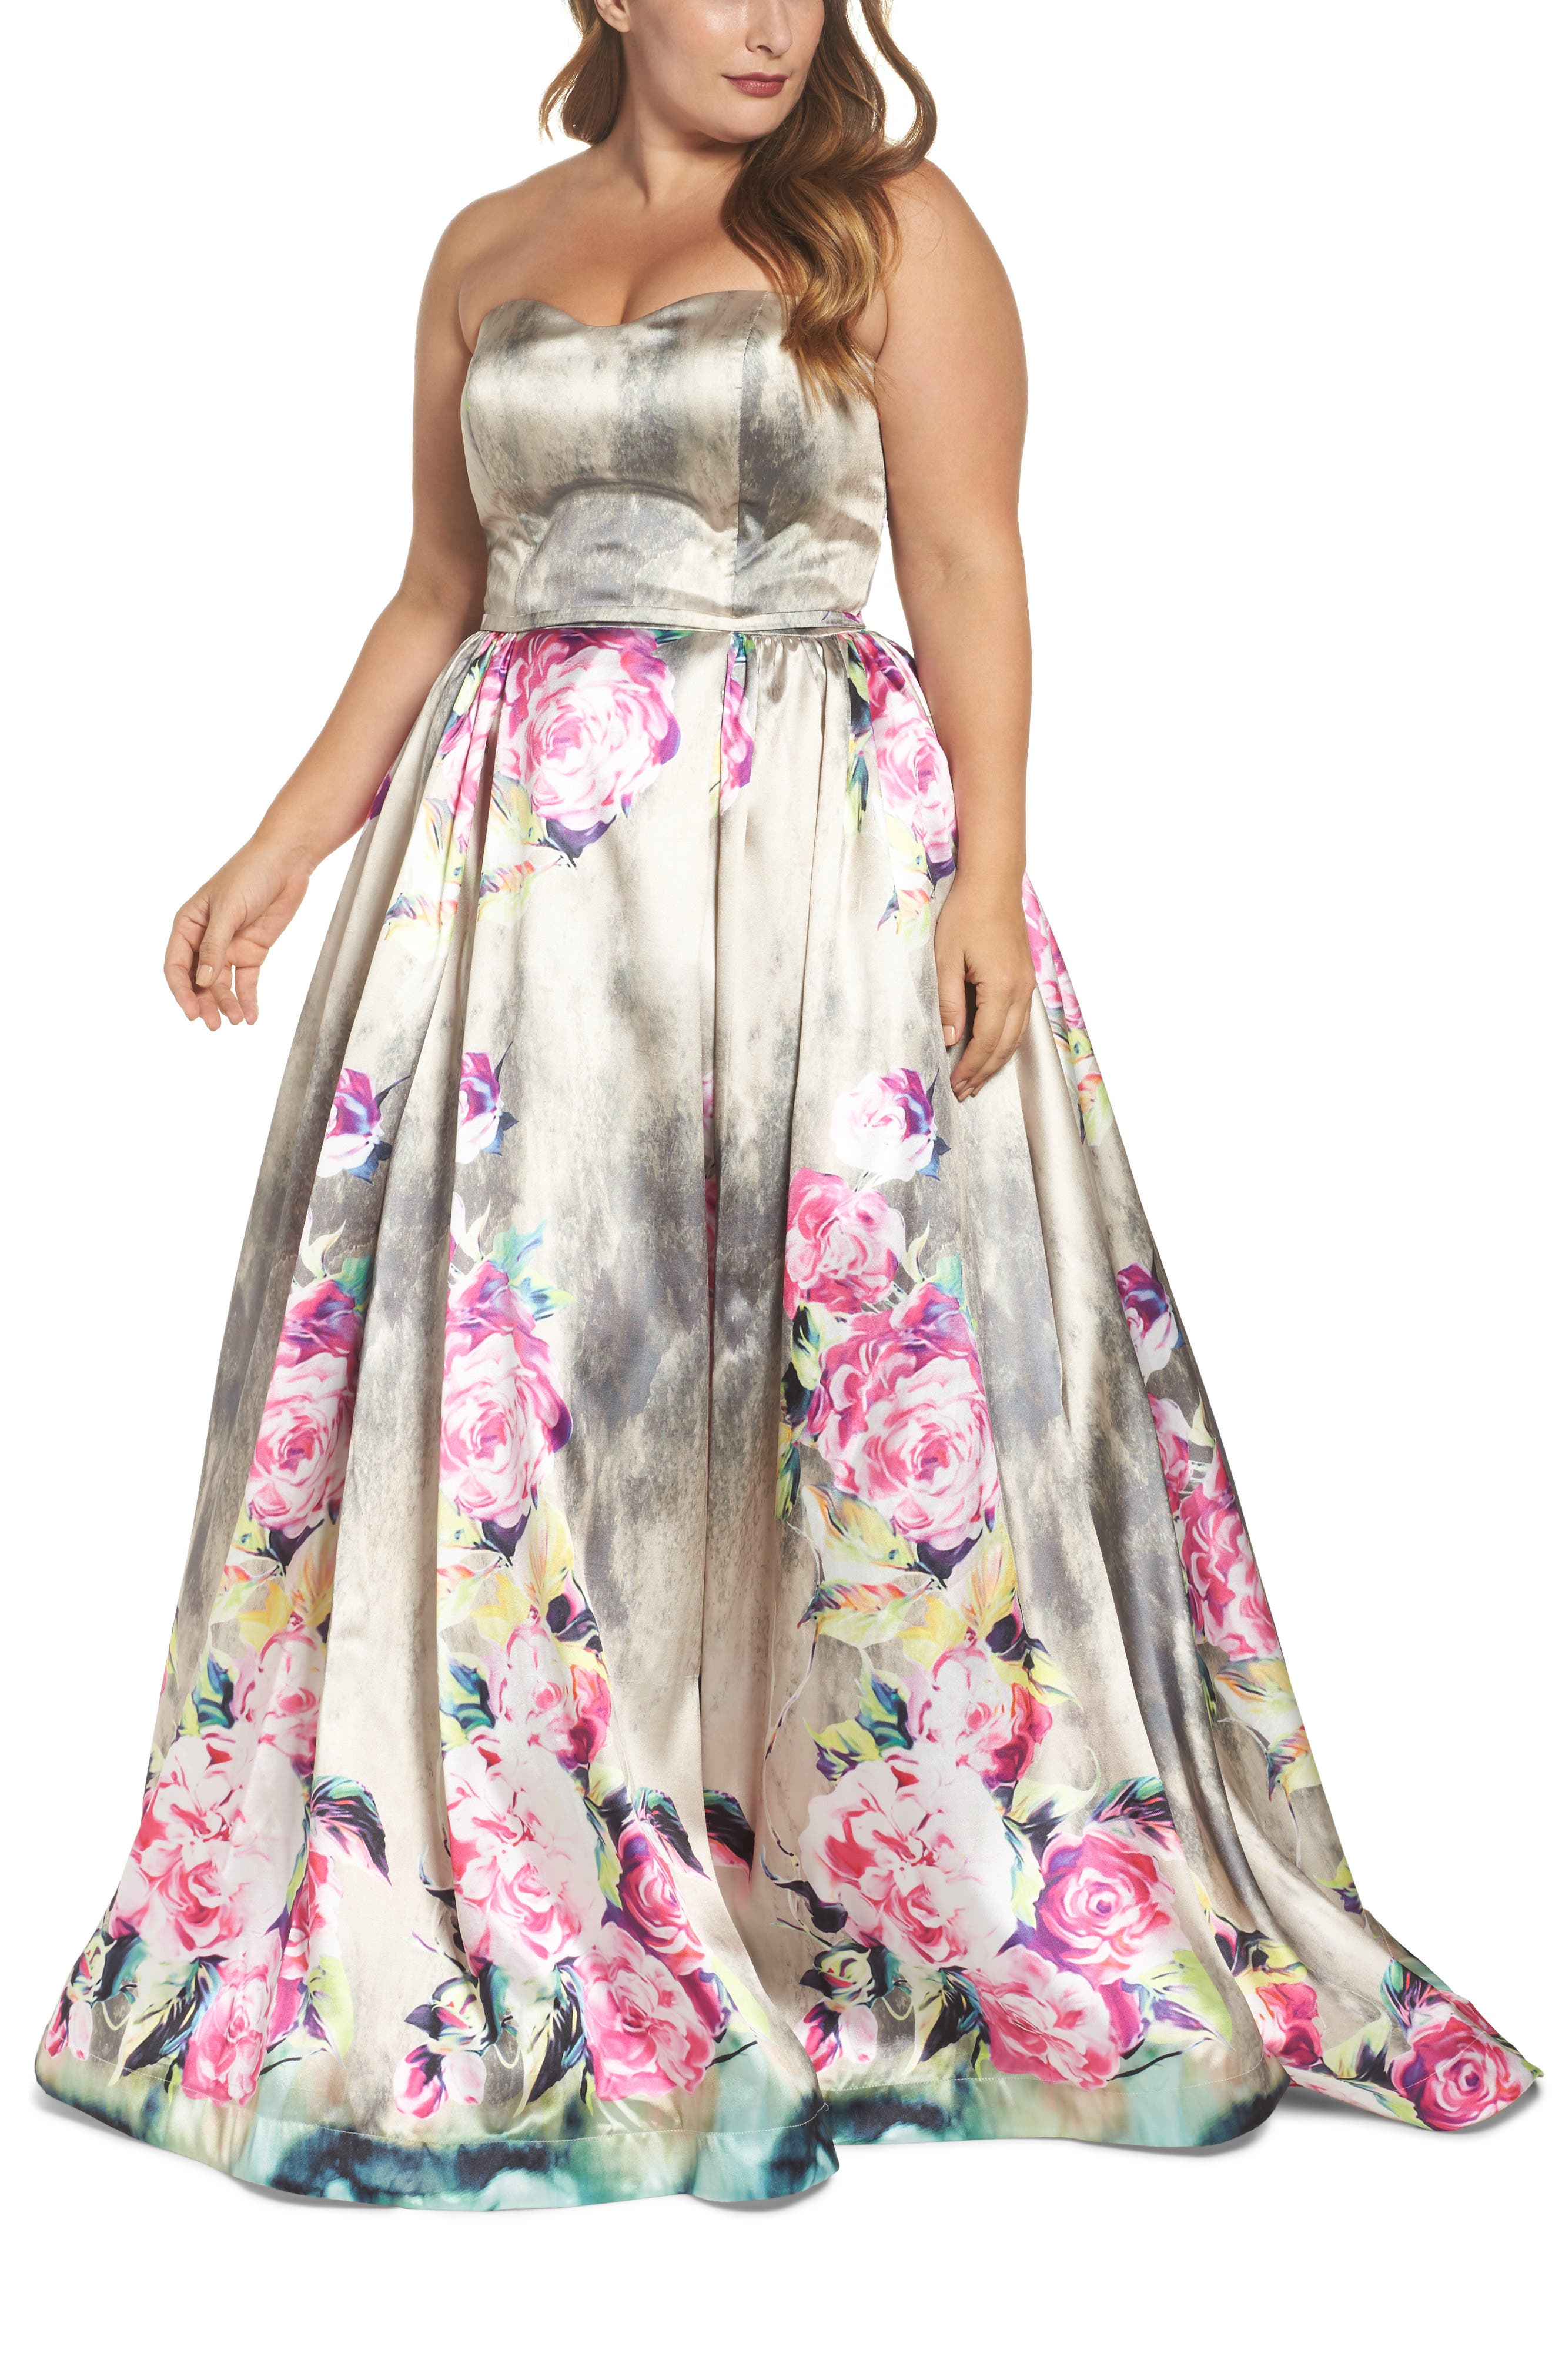 Alternate Image 1 Selected - Mac Duggal Floral Bustier Ballgown (Plus Size)